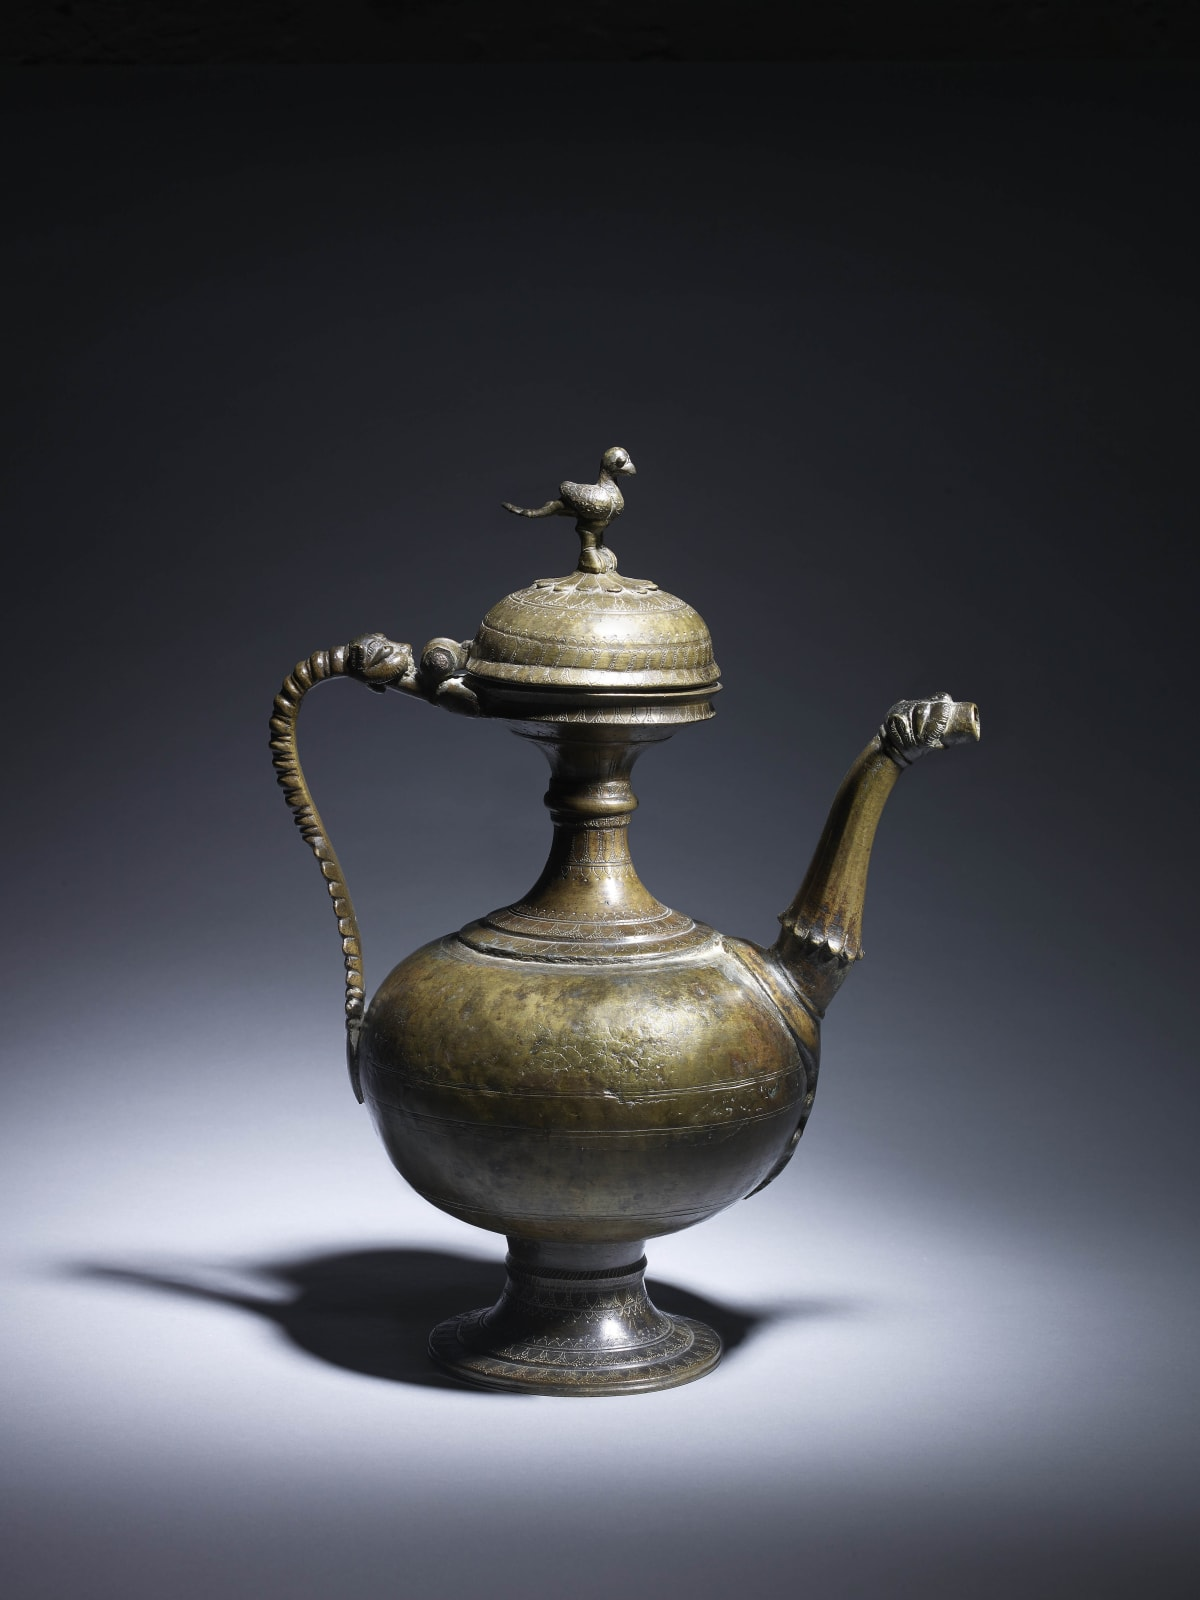 A large Sultanate Bronze Ewer and Cover, India, 16th century